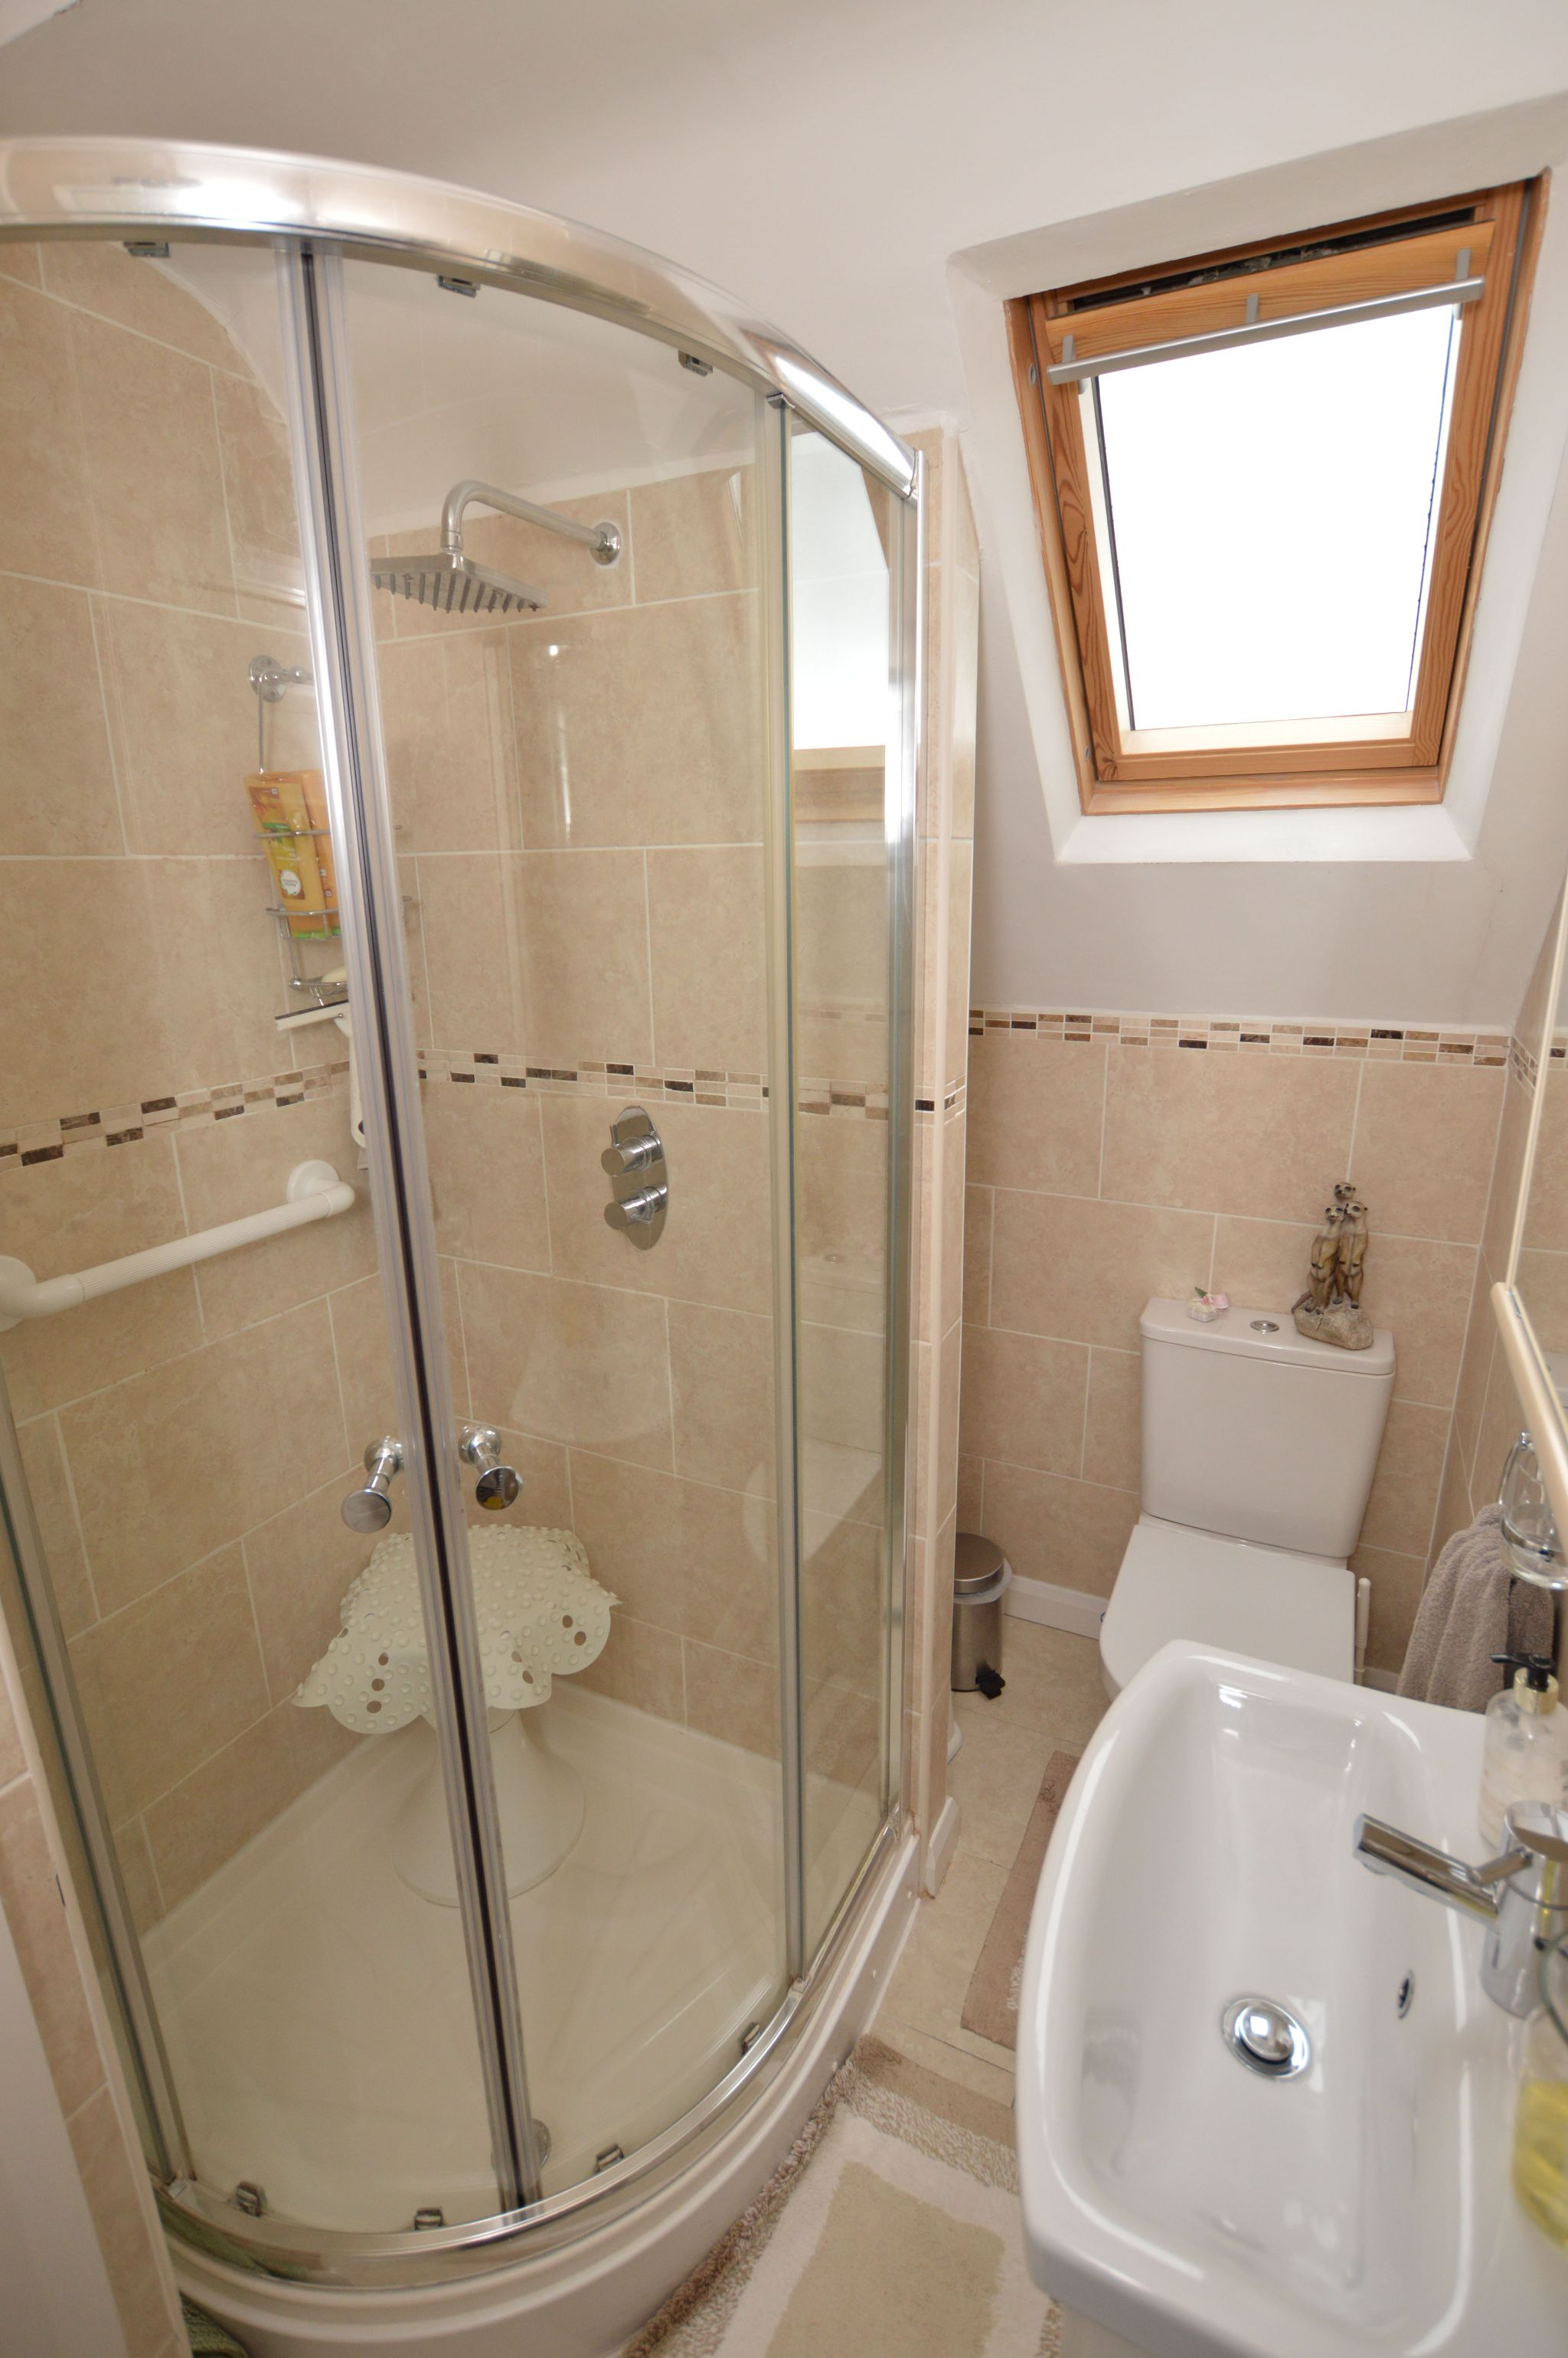 4 bedroom detached bungalow For Sale in Abergele - First Floor Shower Room